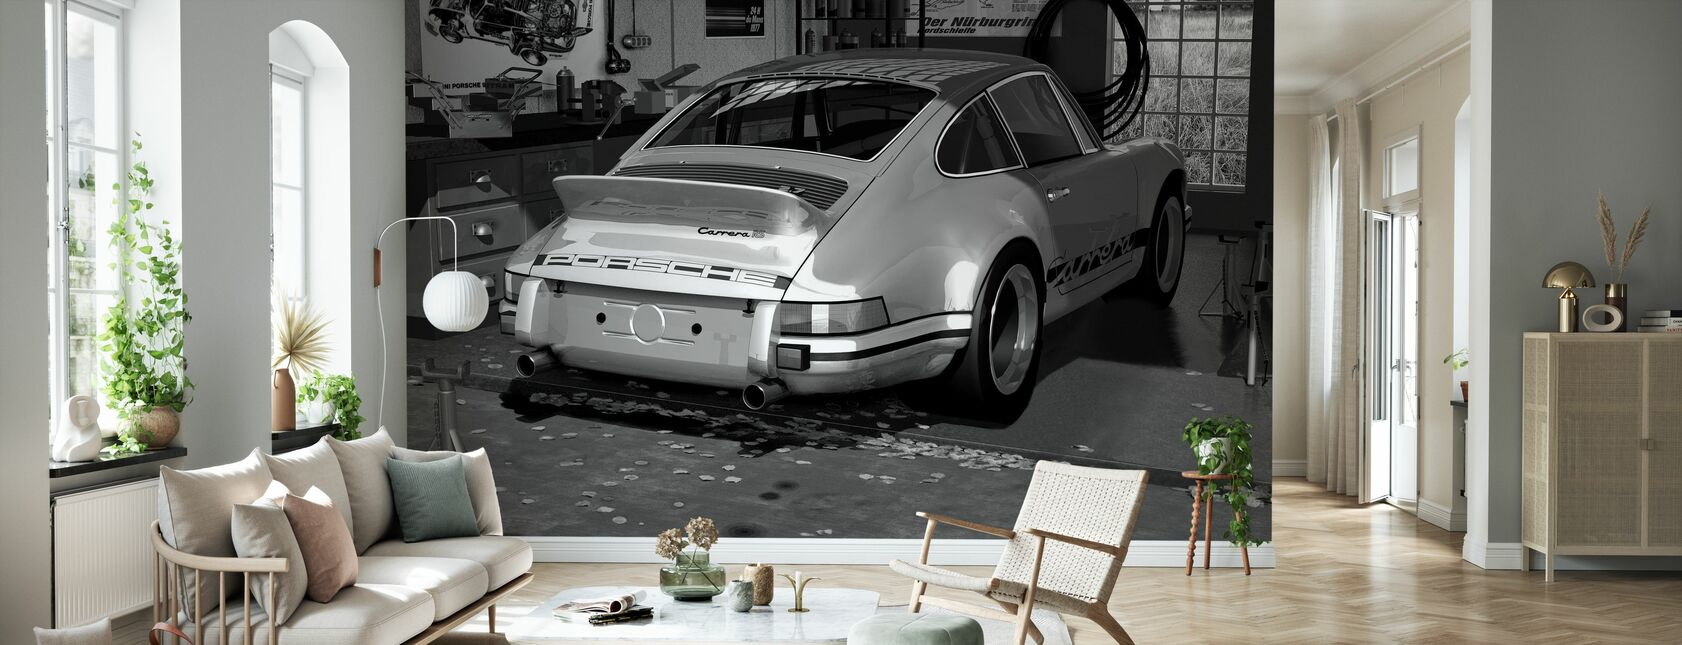 Second Car Only - Bw - Wallpaper - Living Room